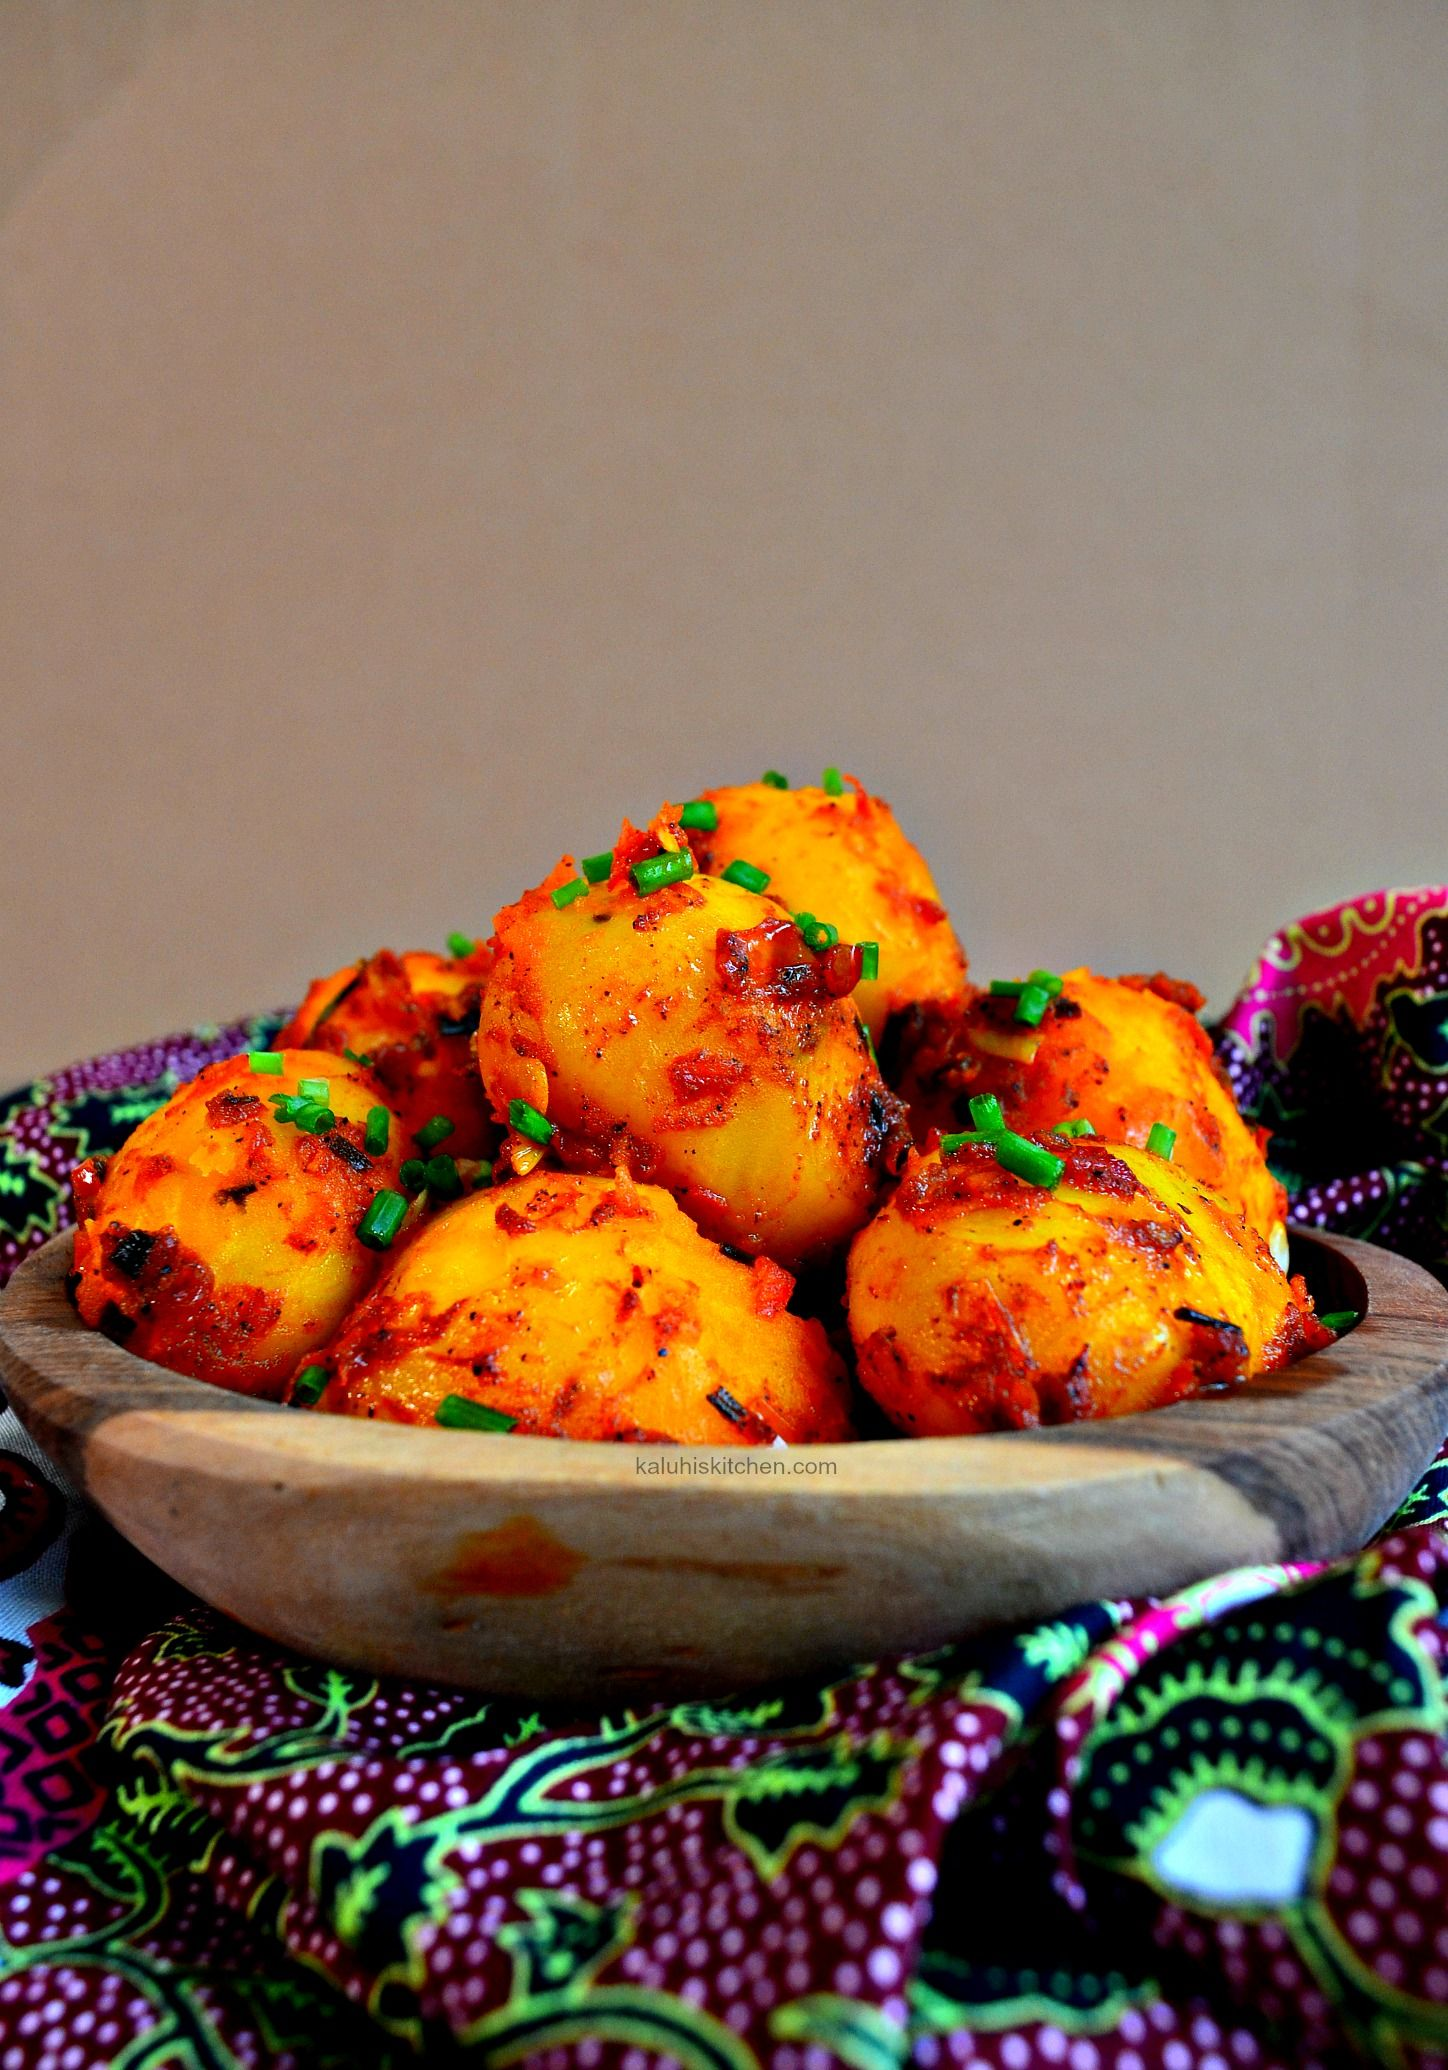 Garlic and paprika potato sautee food blogs africans and garlic best african food blogsbest kenyan food blogspotato recipesgarlic and paprika potato sautee forumfinder Image collections